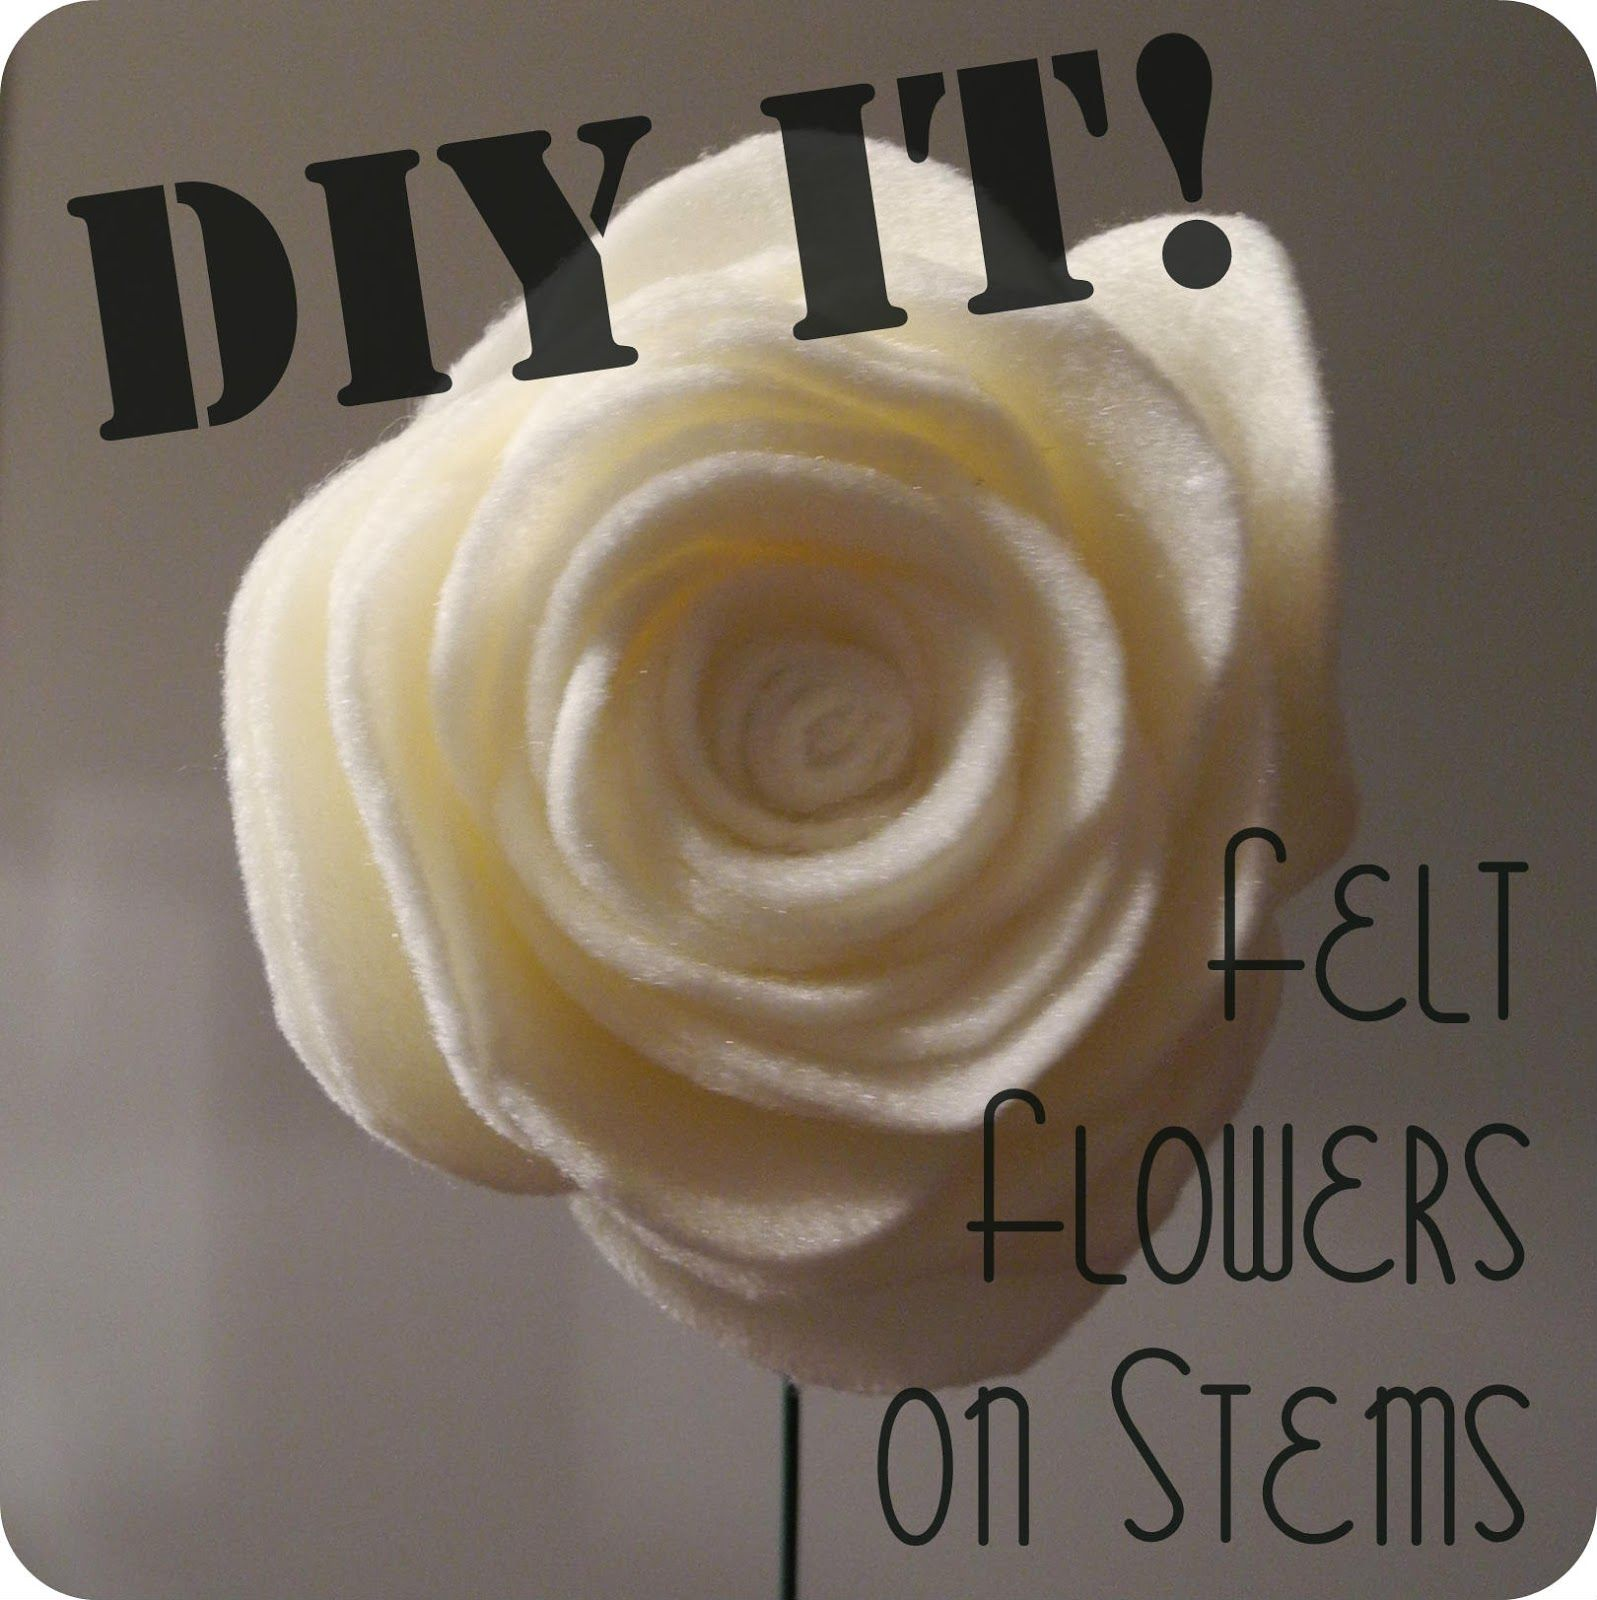 Librarian tells all how to make felt flowers on stems for bouquets librarian tells all how to make felt flowers on stems for bouquets izmirmasajfo